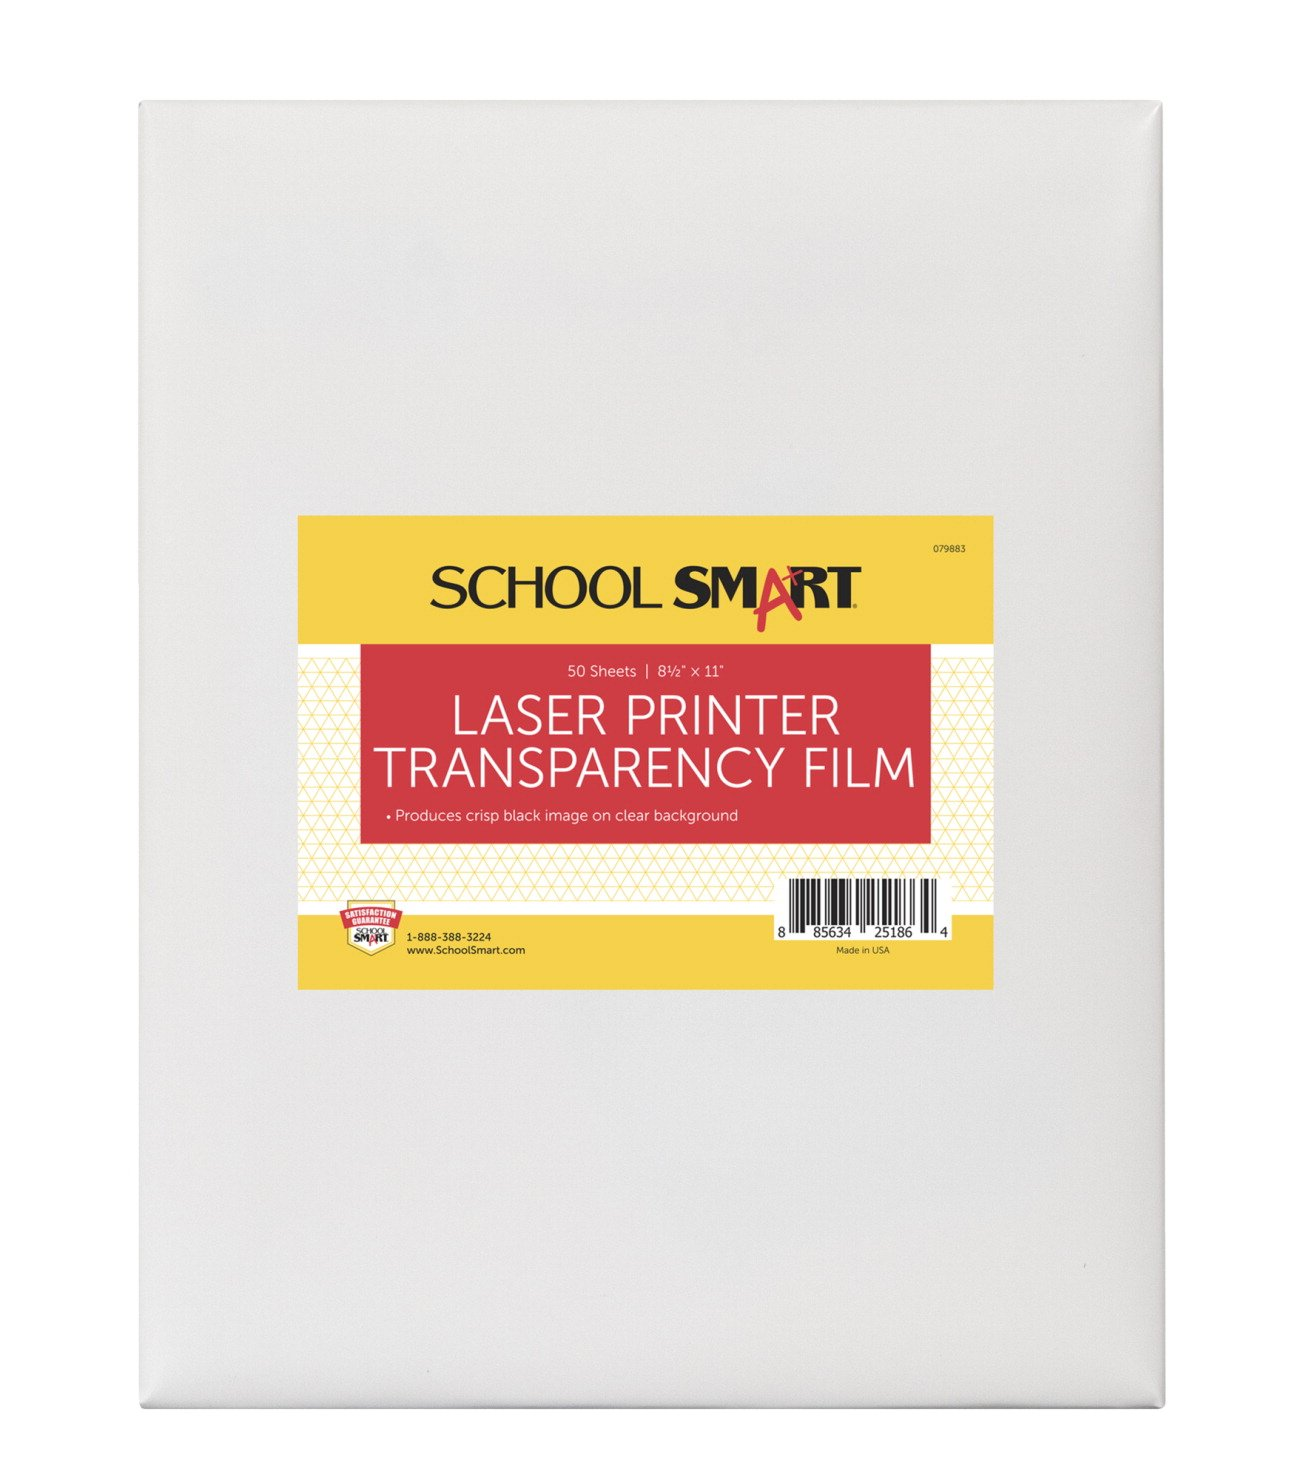 School Smart Laser Transparency Film without Sensing Strip - 8 1/2 x 11 inches - Pack of 50